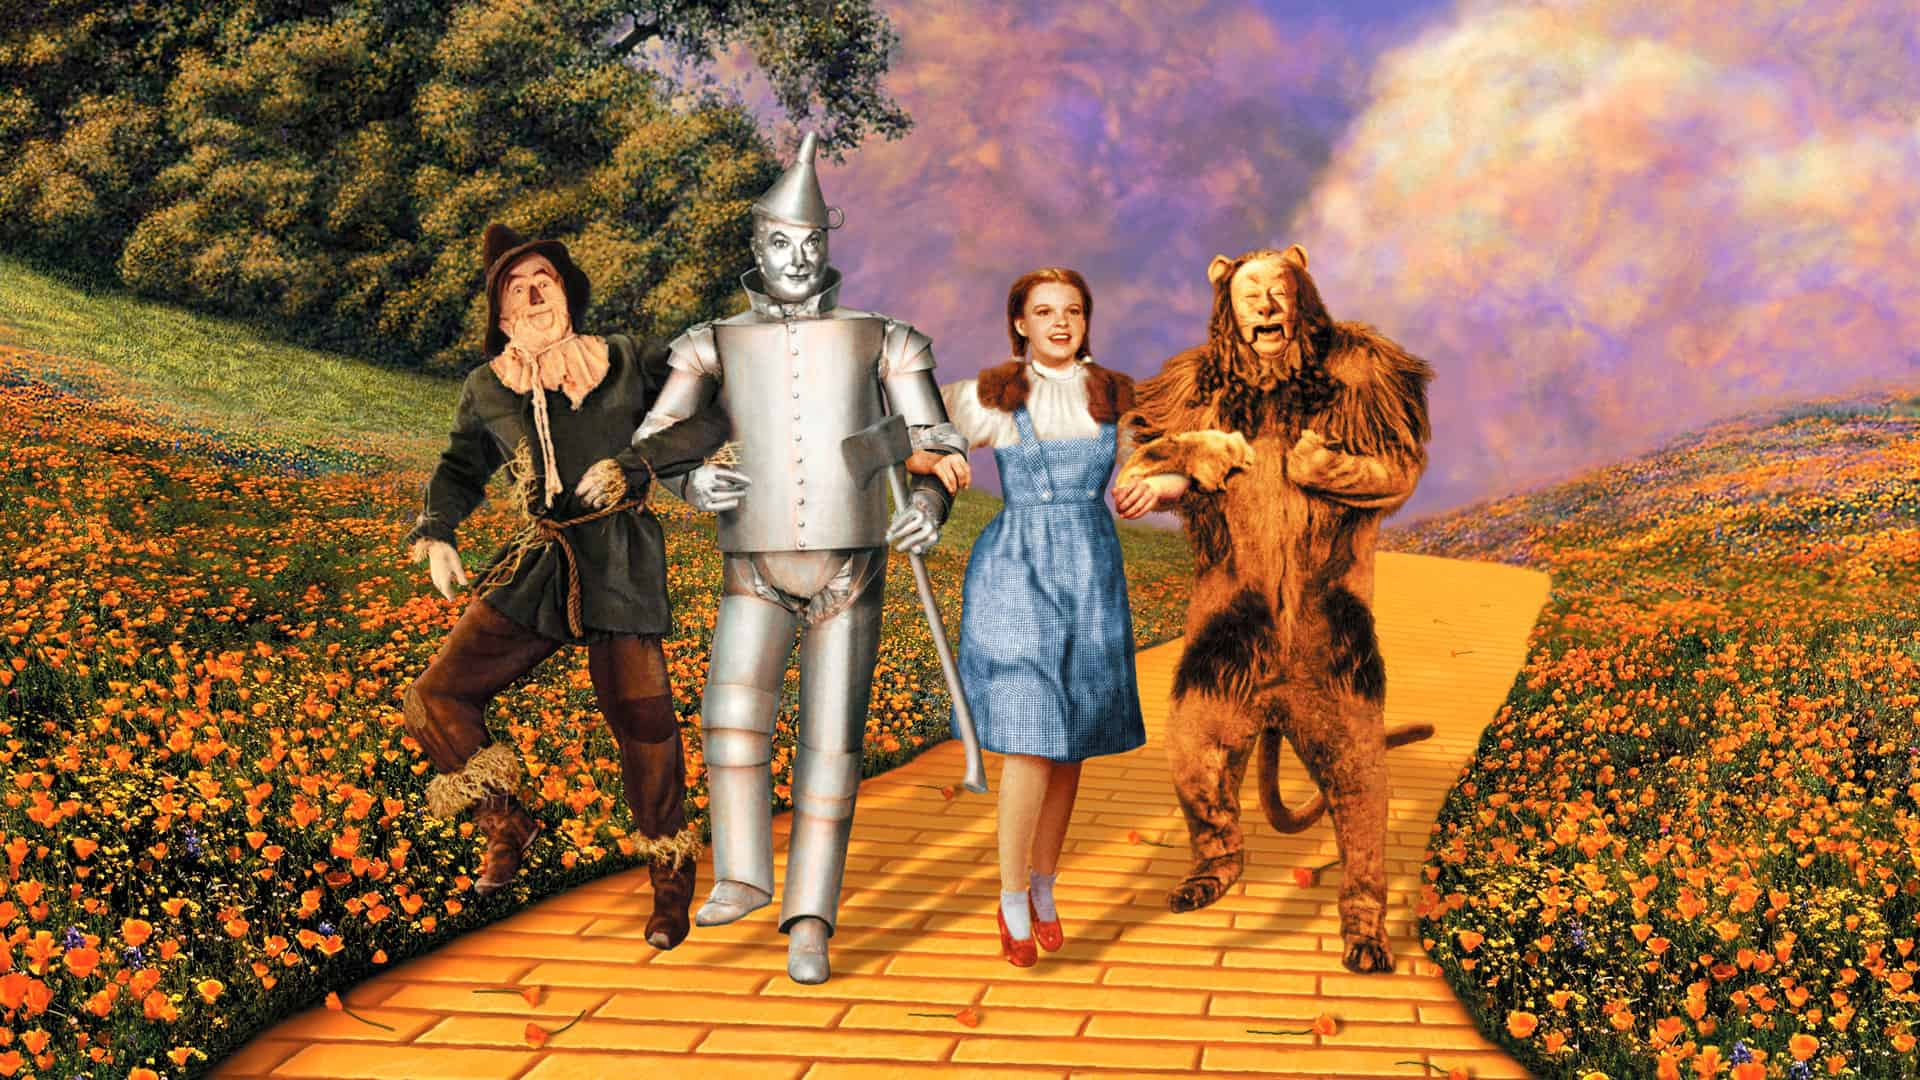 The Wizard Of Oz Archives  Shedoesthecity The Wizard Of Oz Performed Live By The Toronto Symphony Orchestra Essay In English For Students also Research Paper Essay Format  Custom Wrting